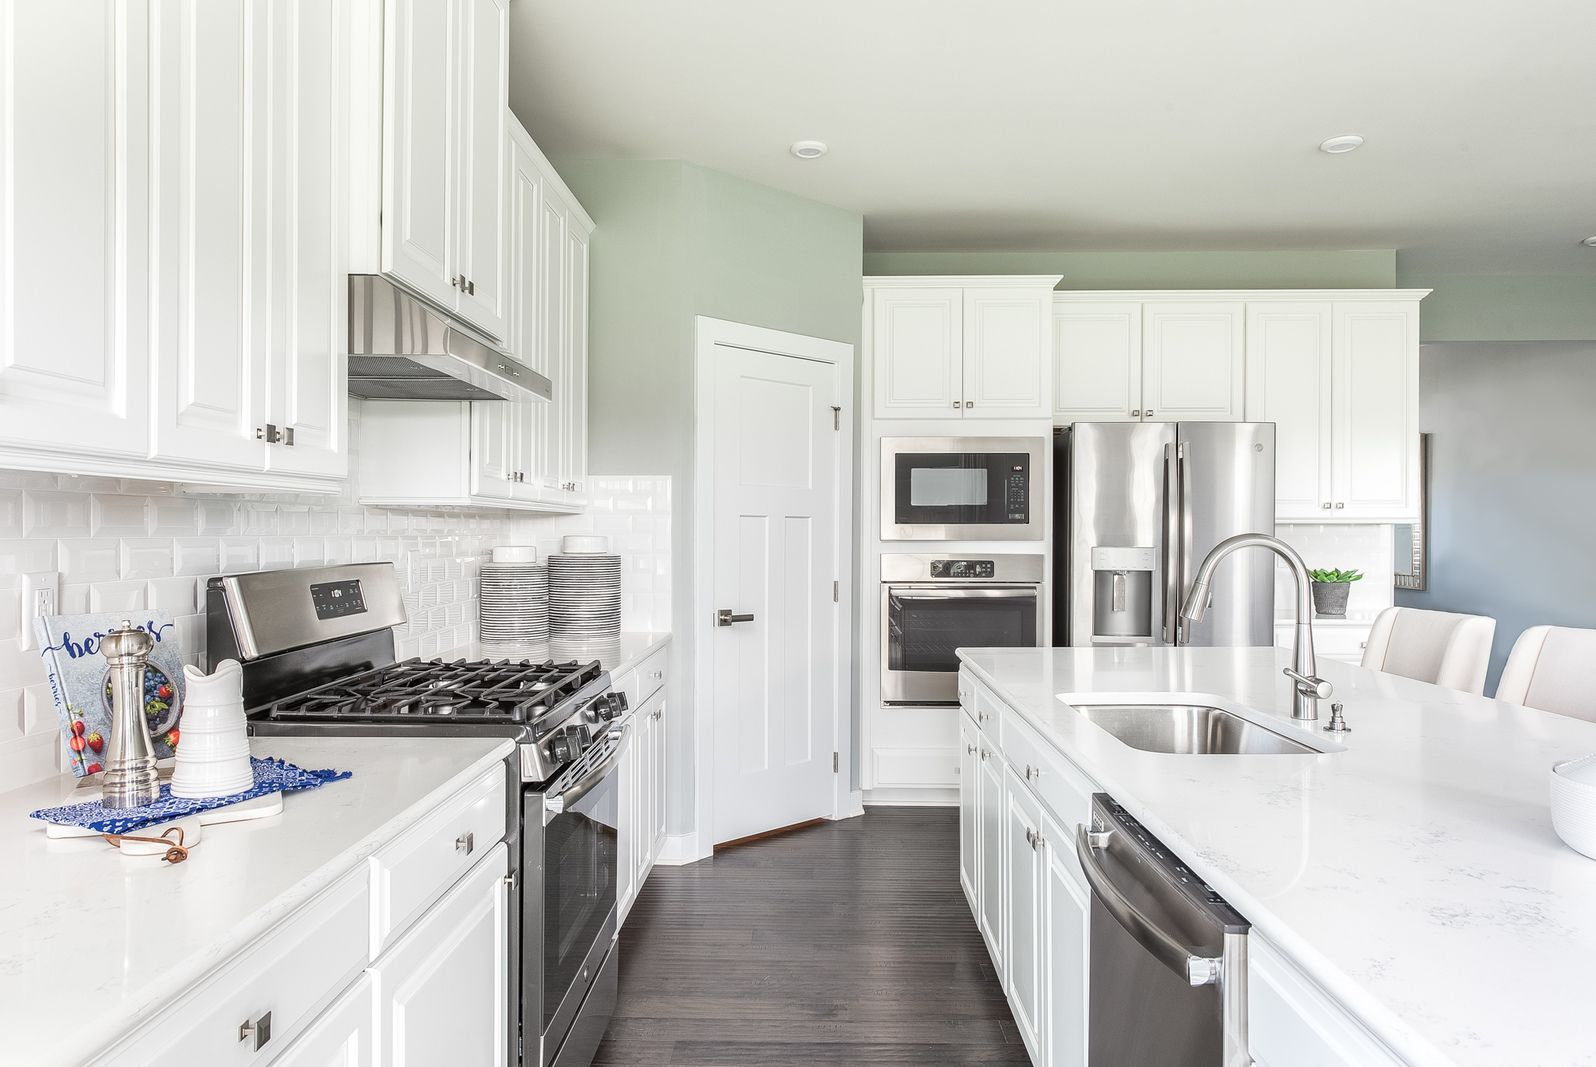 Kitchen featured in the Lehigh at Hartland By Ryan Homes in Washington, VA